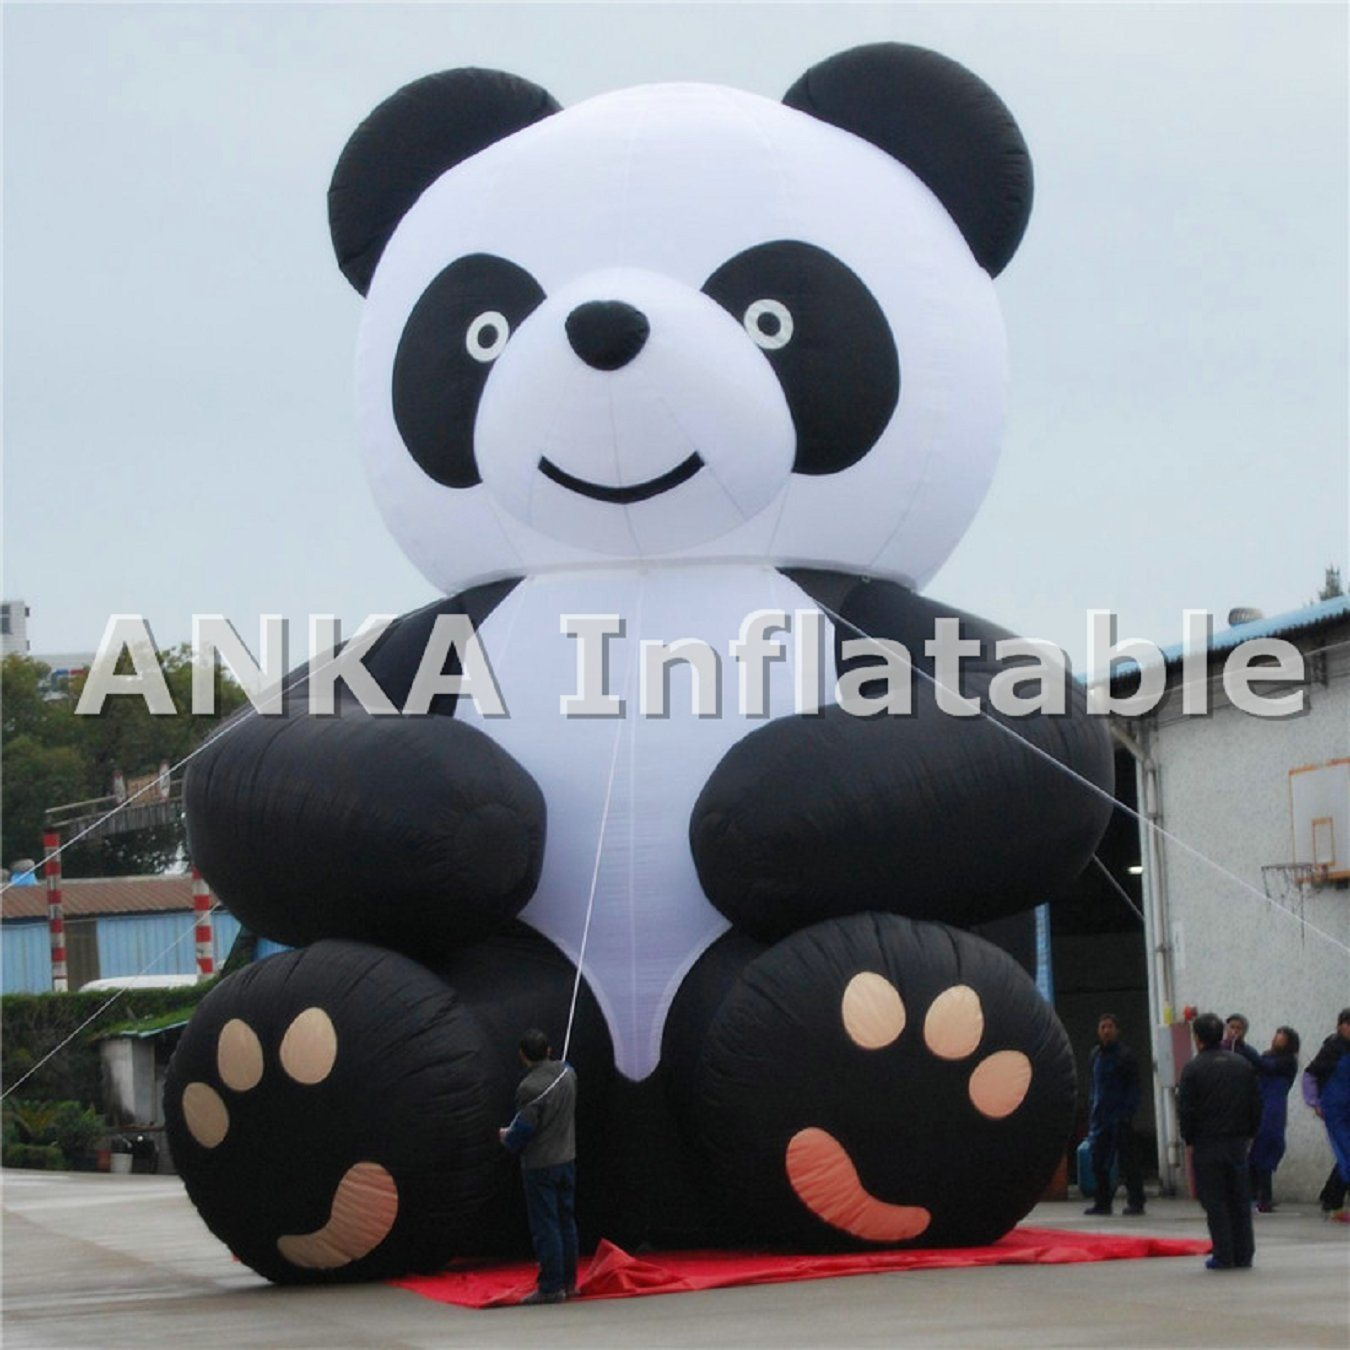 Anka Giant Inflatable Kongfu Panda Cartoon on Sale